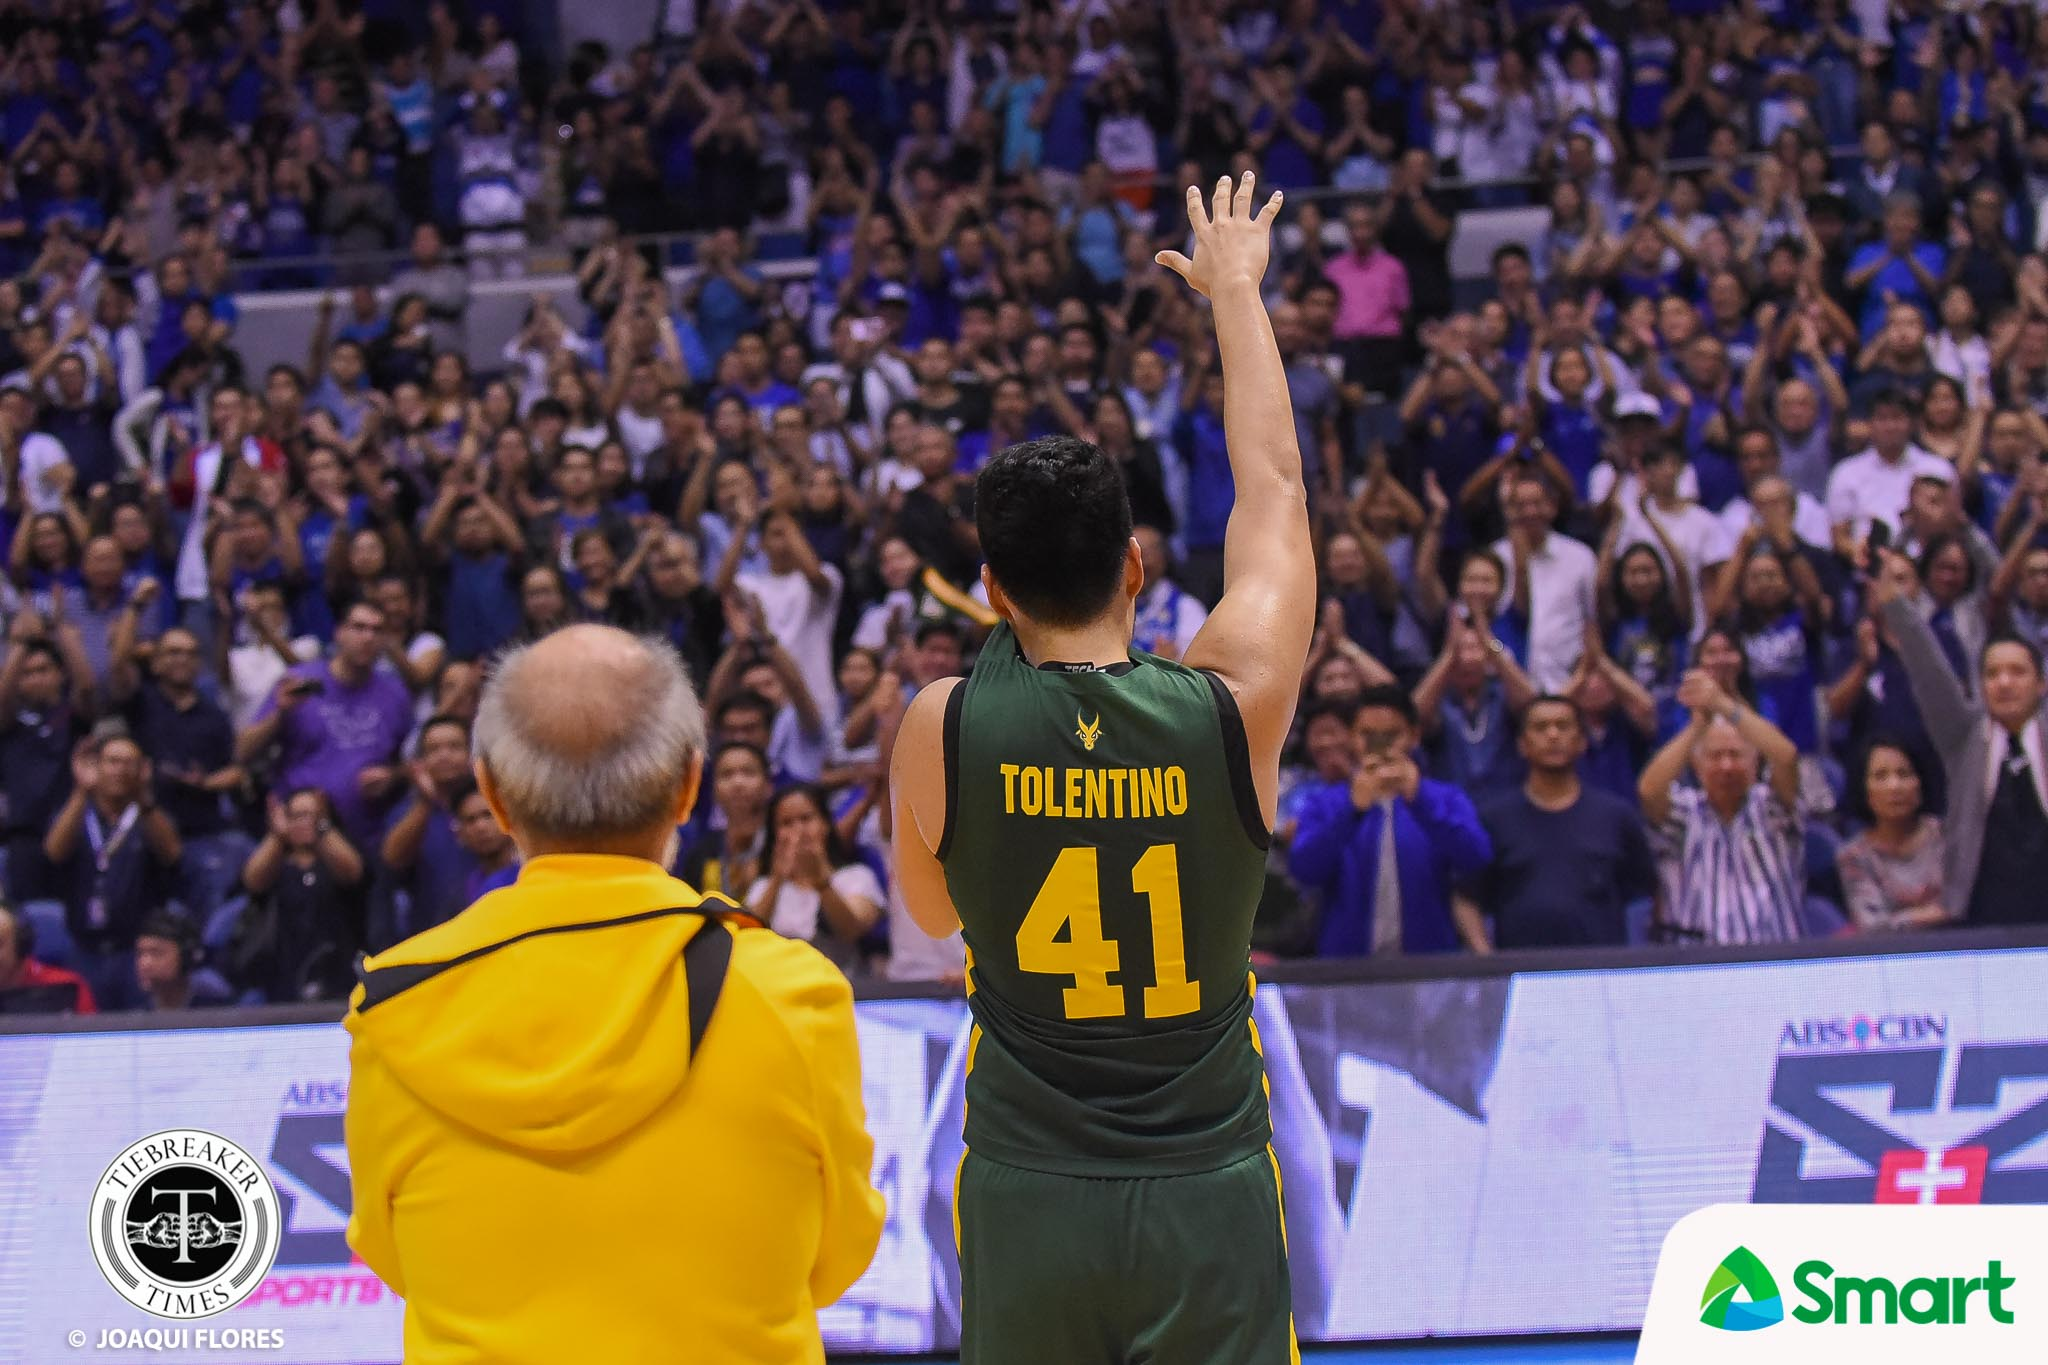 Tiebreaker Times Arvin Tolentino grateful for 'Be Brave' and the 'One Big Fight' Basketball FEU News UAAP  UAAP Season 81 Men's Basketball UAAP Season 81 FEU Men's Basketball Arvin Tolentino